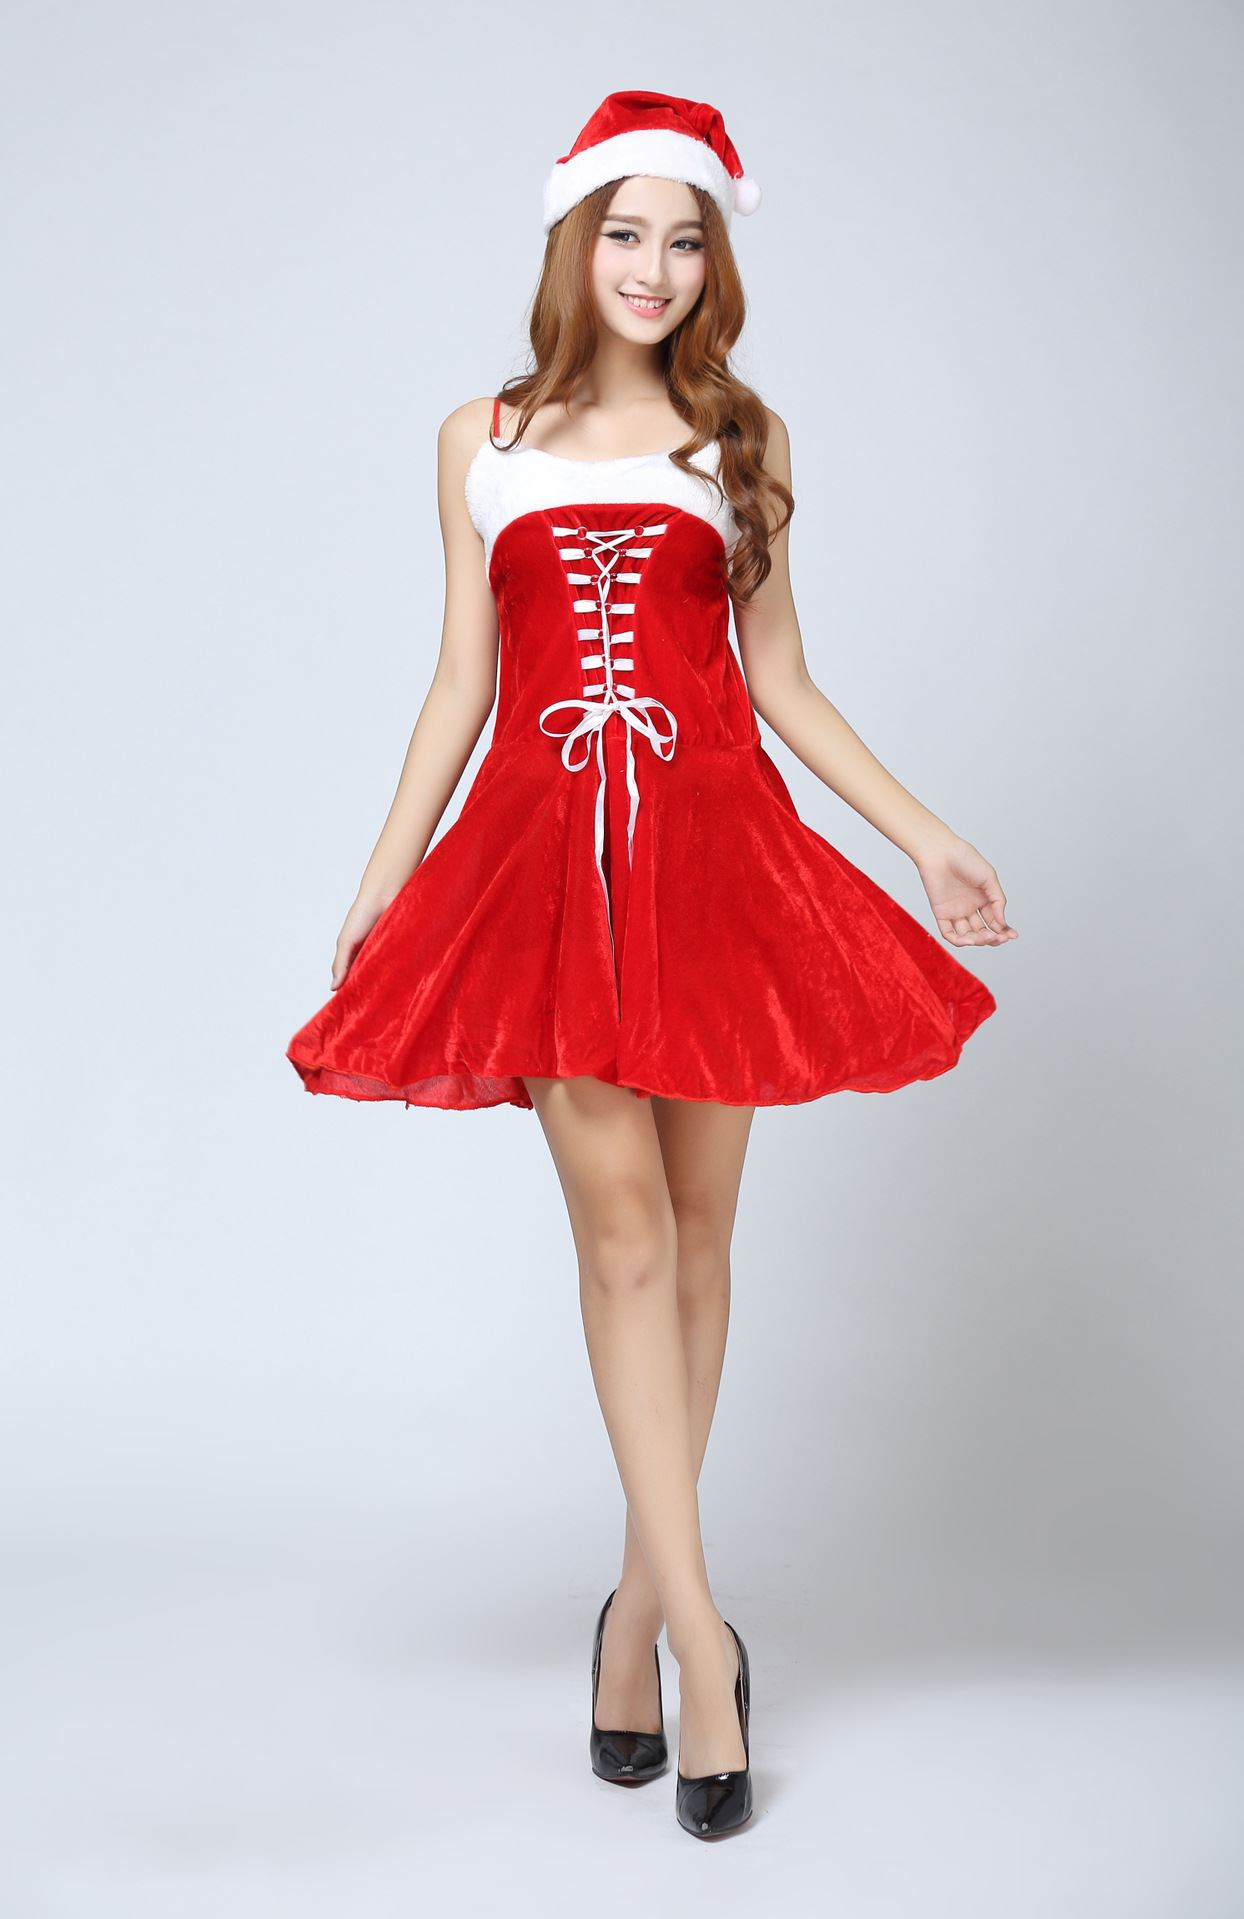 New women s ms santa dress sexy ladies costume christmas red outfit